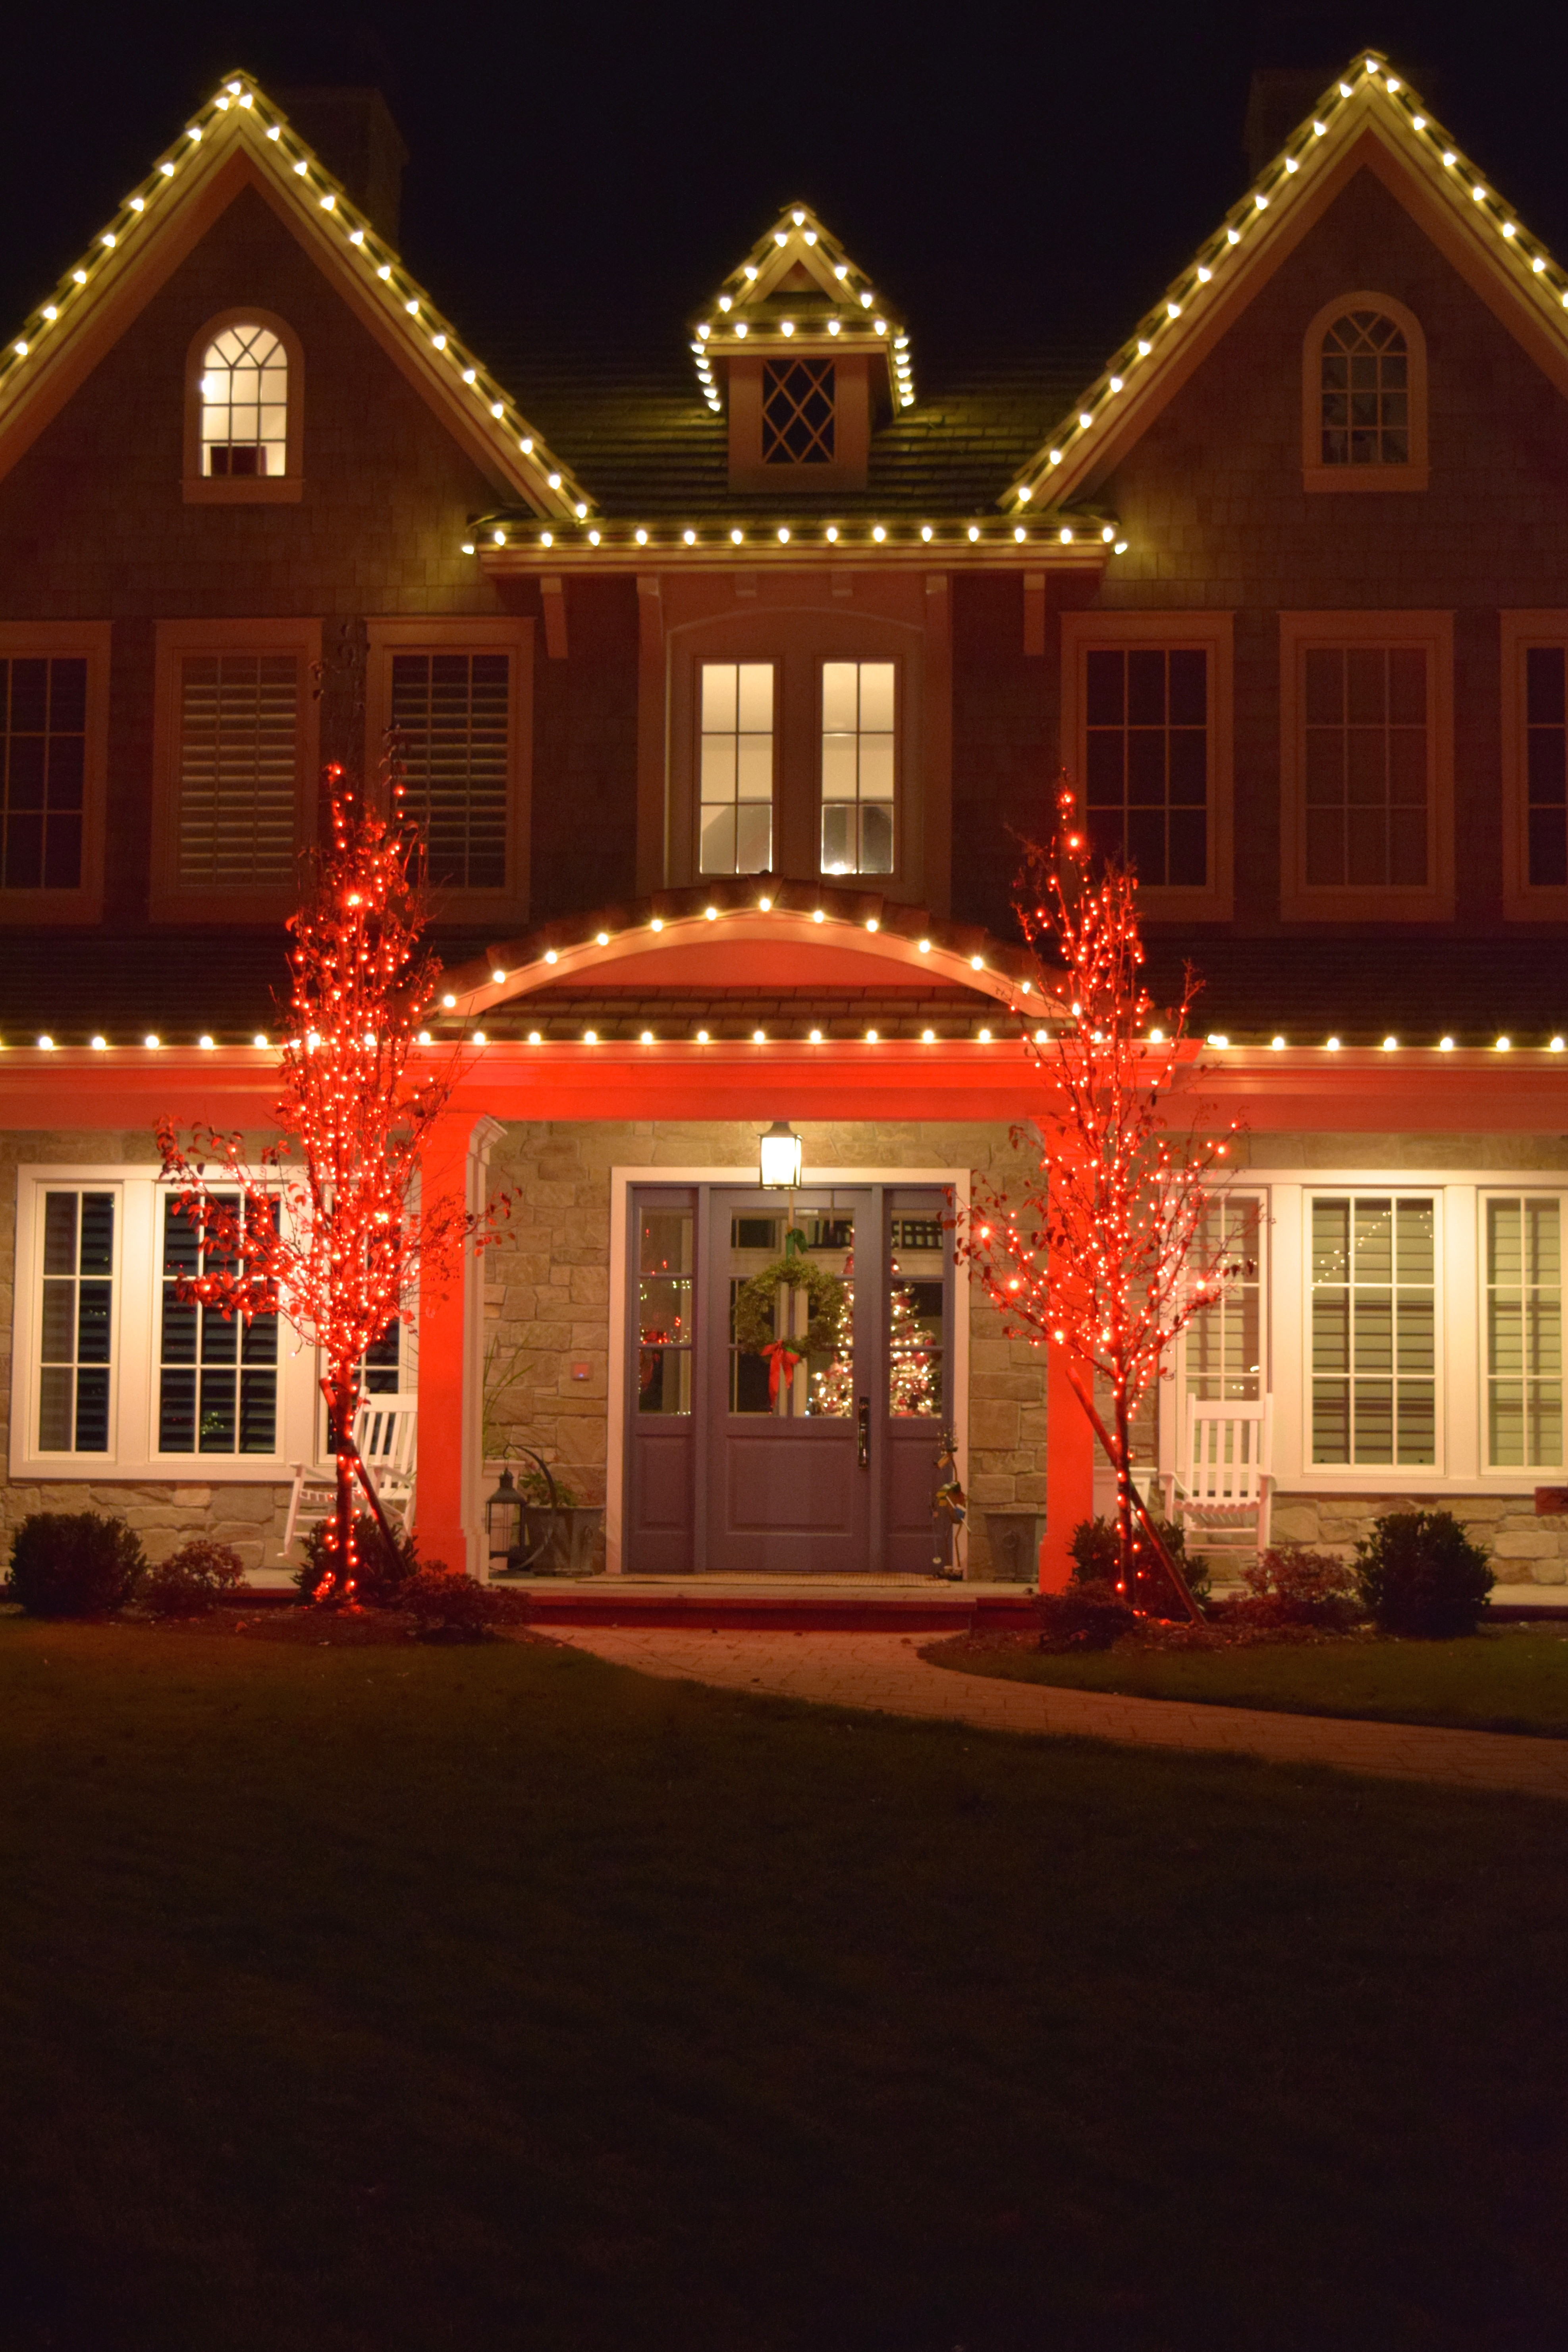 LED Christmas Lights - Warm White, Red